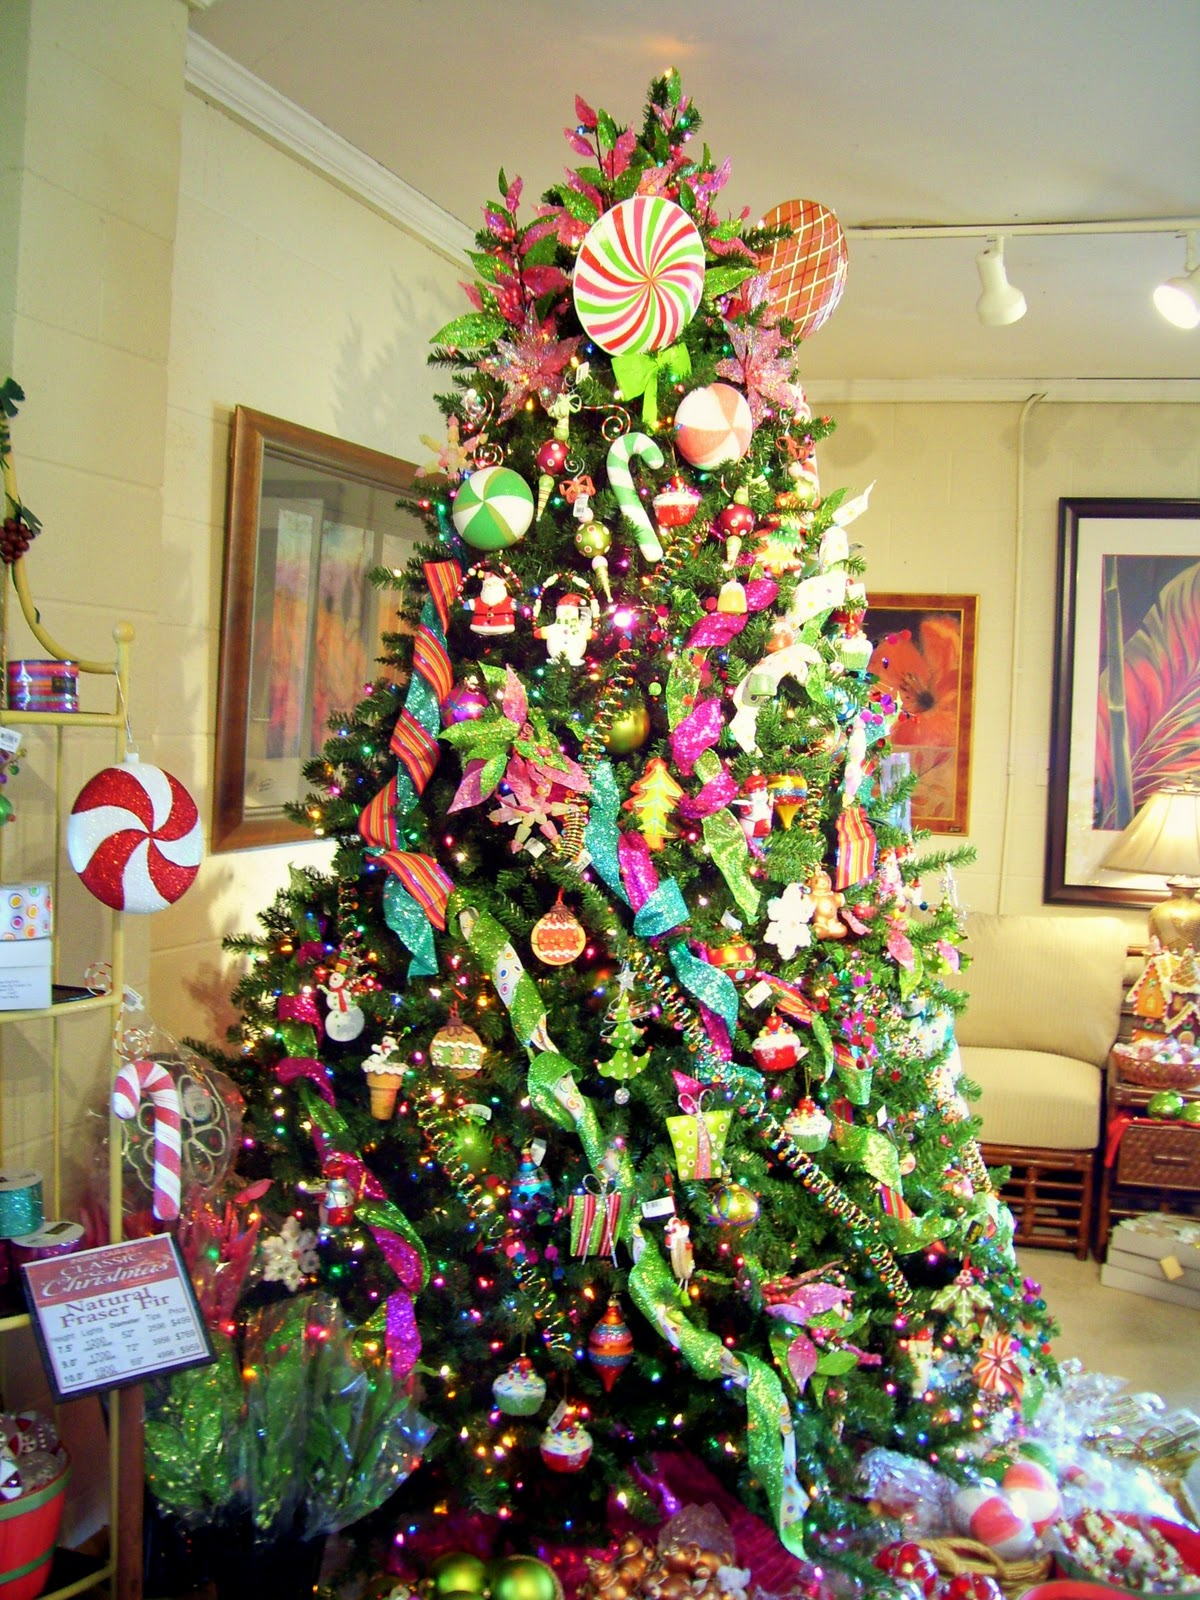 http://2.bp.blogspot.com/-QoYLbsfIKNQ/TuT5YApg7mI/AAAAAAAAAzI/zatQBkmMzS0/s1600/sugarplum-christmas-tree-decorating-ideas.jpg